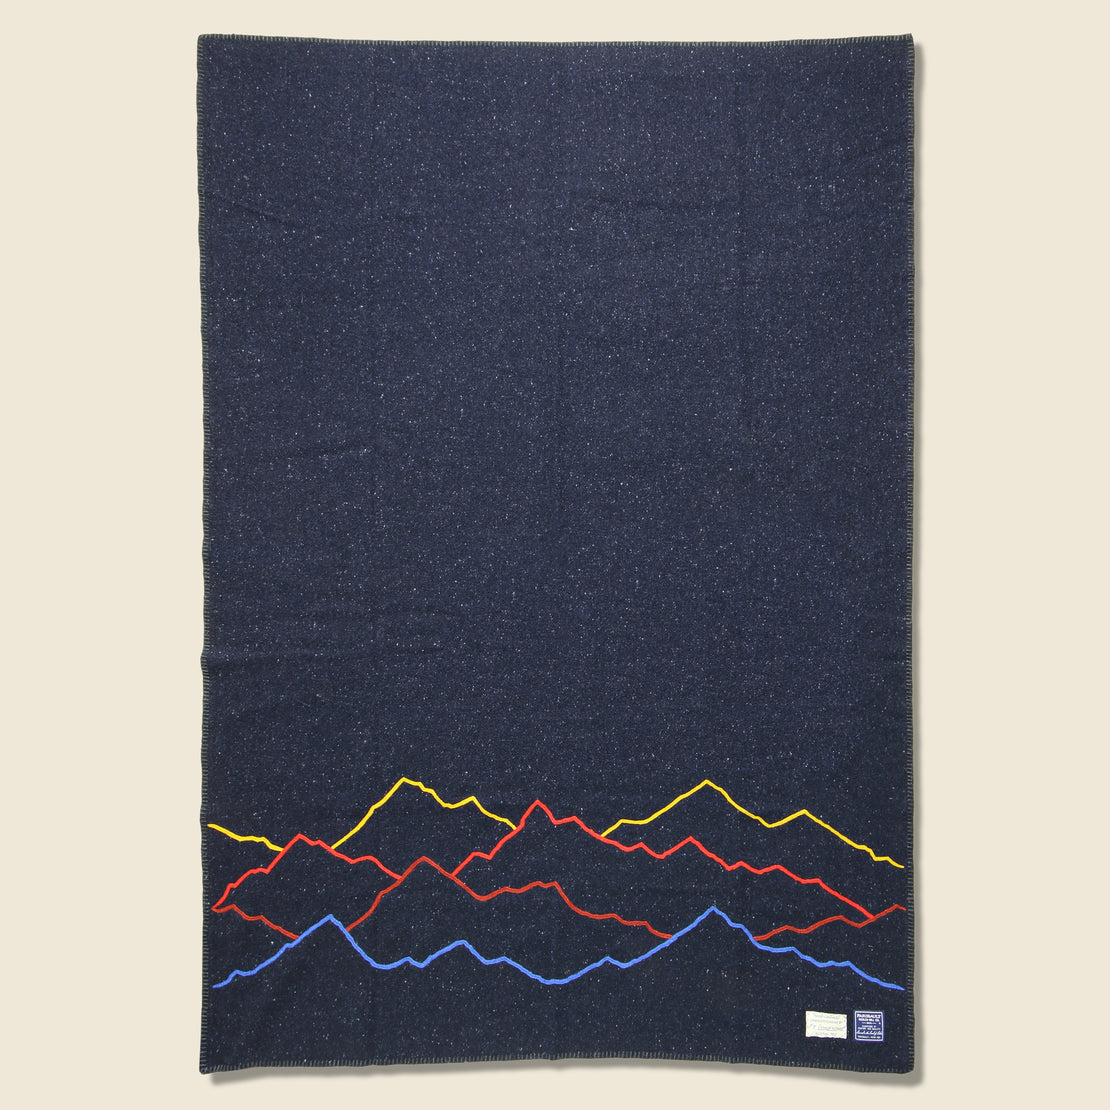 Fort Lonesome Mountain Landscape Small Utility Blanket - Navy